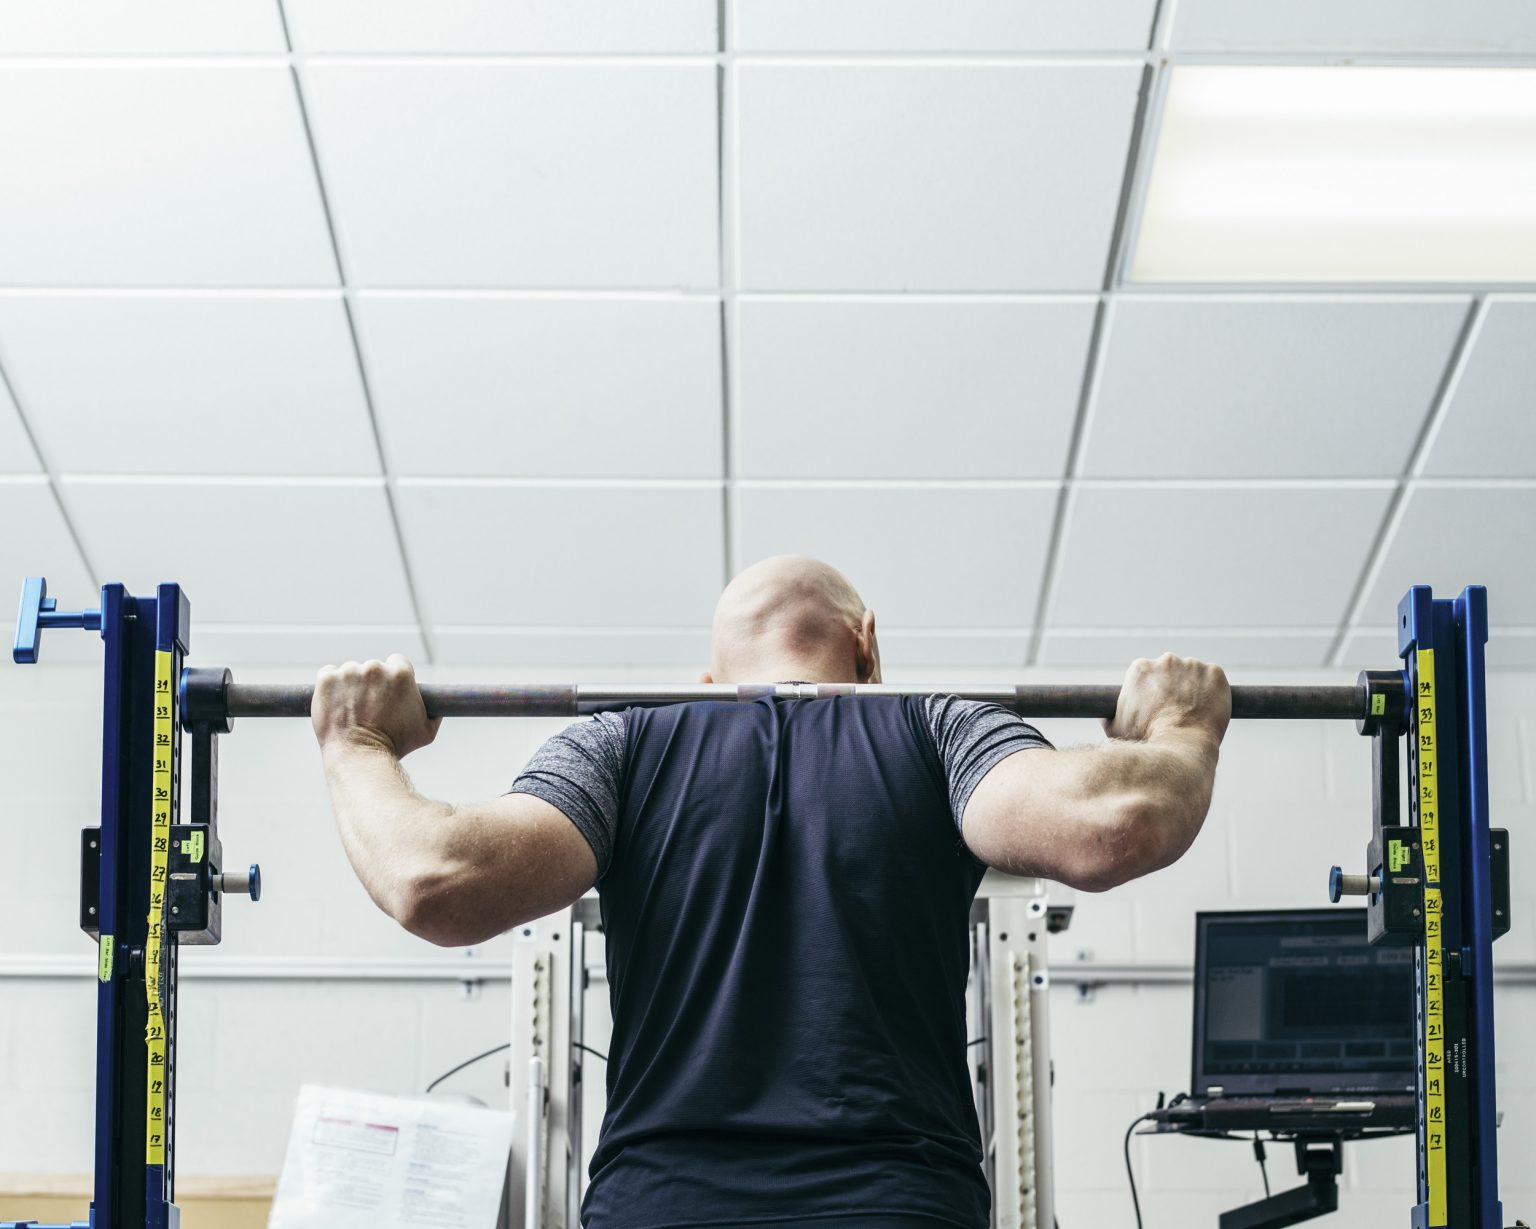 Alexander Gerst training at the gym labs. The devices are identical to the ones present at the ISS, where in absence of gravity body weight needs to be simulated trough extra weight. NASA Johnson Space Center, Houston, Texas, USA, 2018